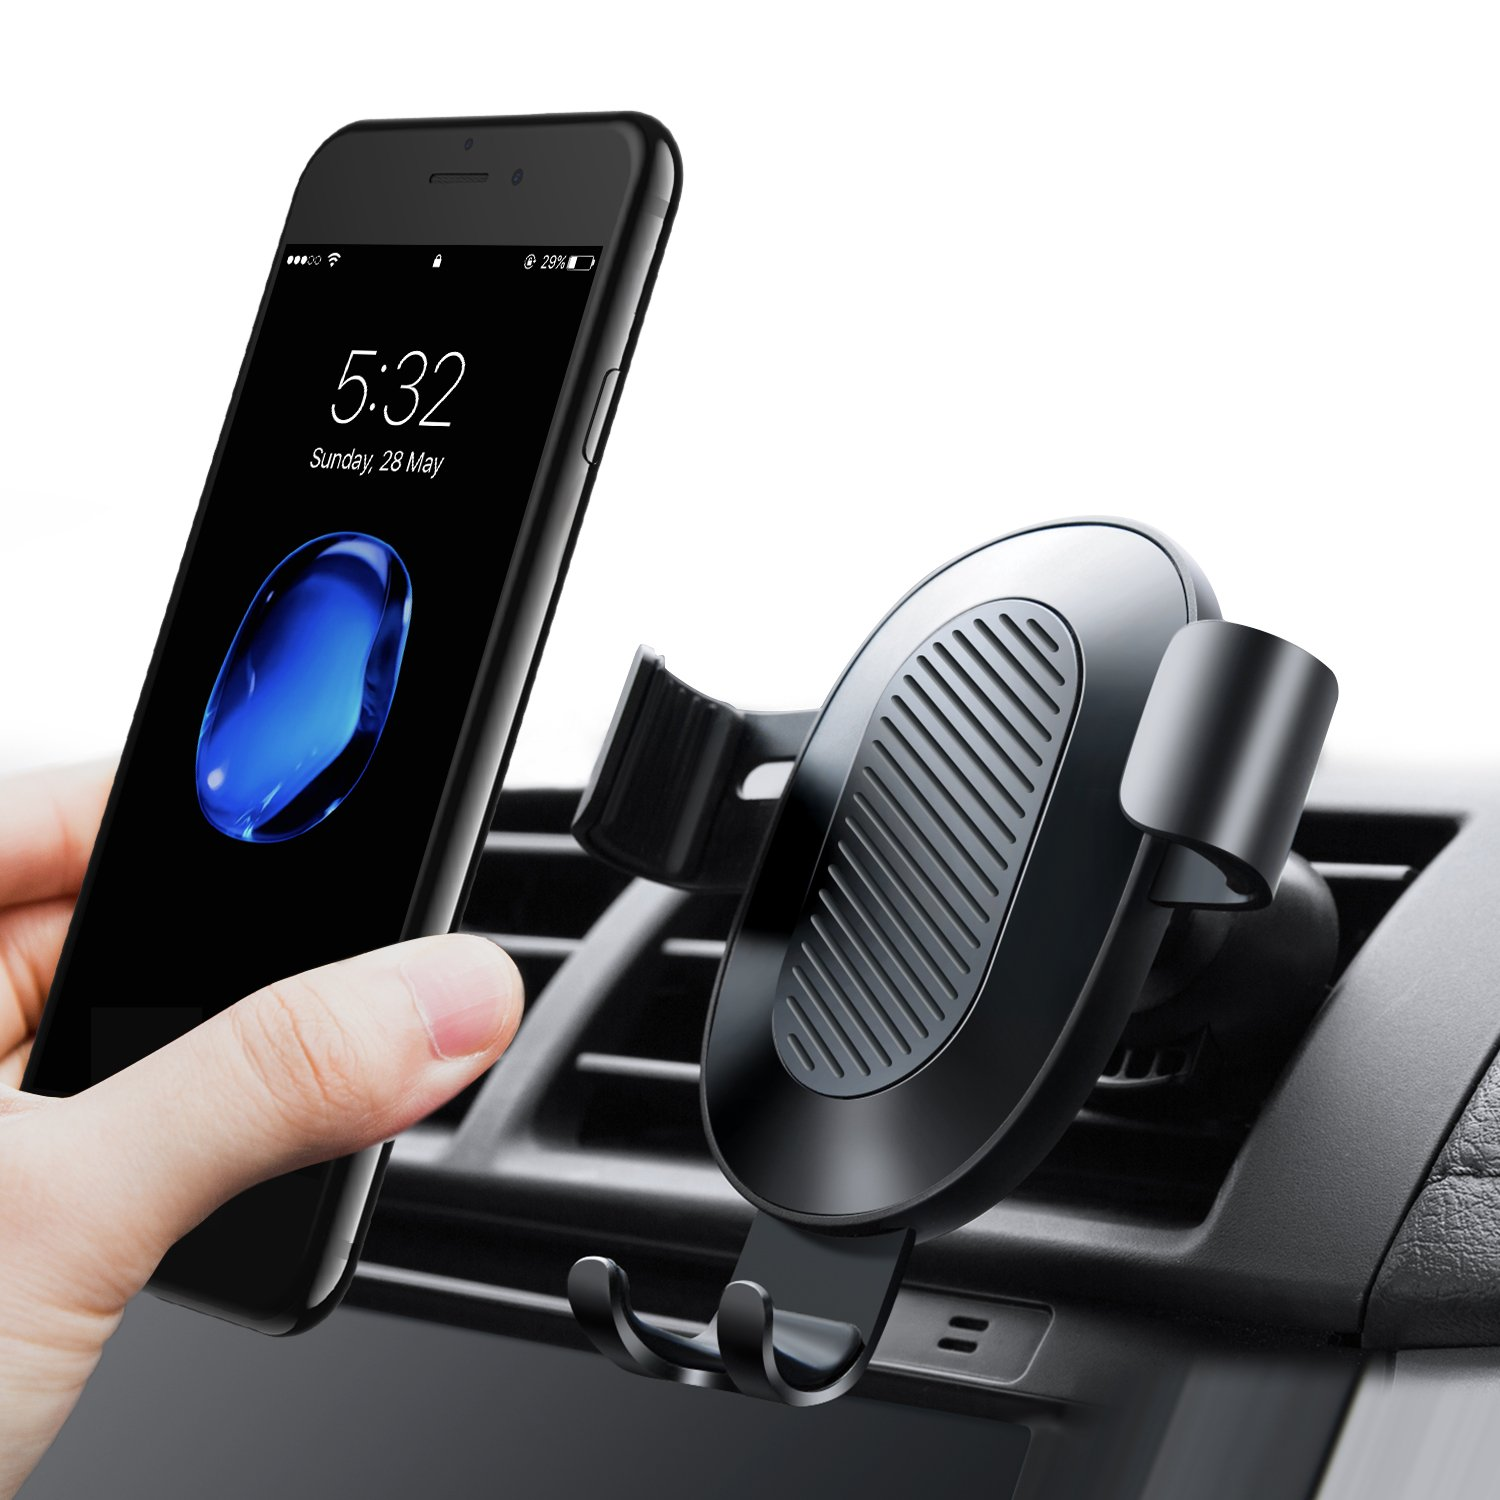 TORRAS Cell Phone Holder for Car, Gravity Auto-clamping Air Vent Car Phone Mount Holder Cradle for iPhone X / 8/8 Plus / 7/7 Plus Samsung Galaxy S9 / S9 Plus / S8 / S8 Plus and more – Black by TORRAS (Image #1)